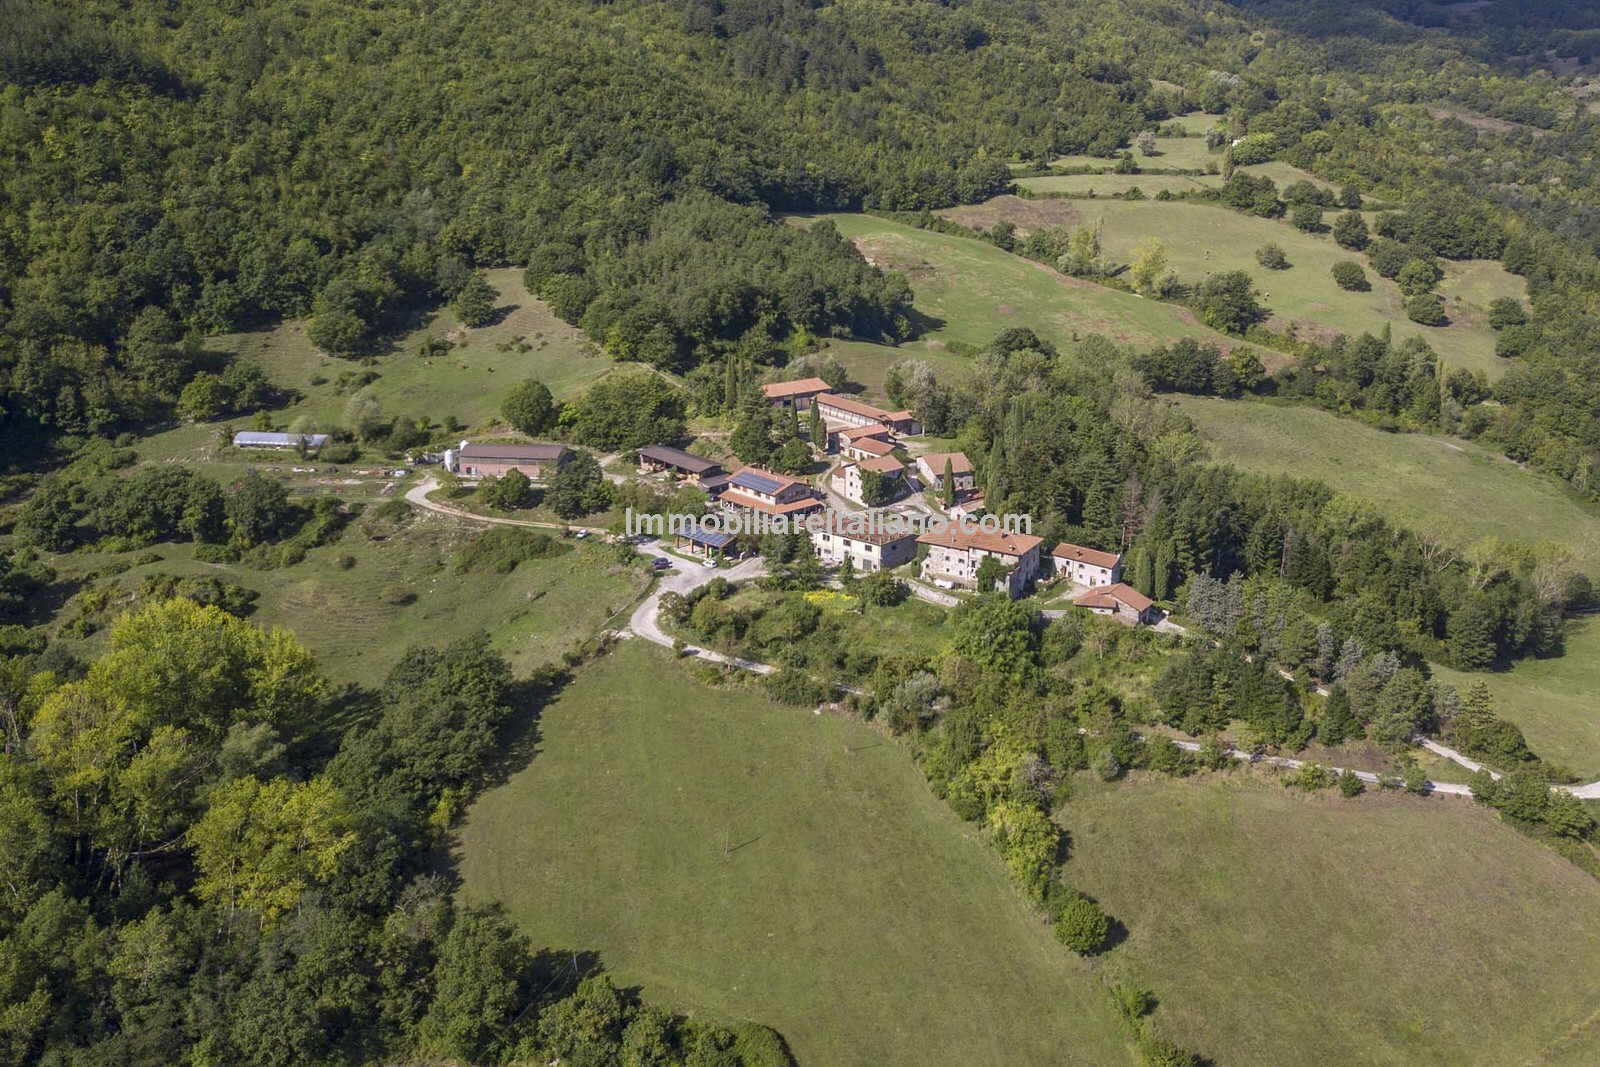 Aerial view of Italian farm hamlet for sale